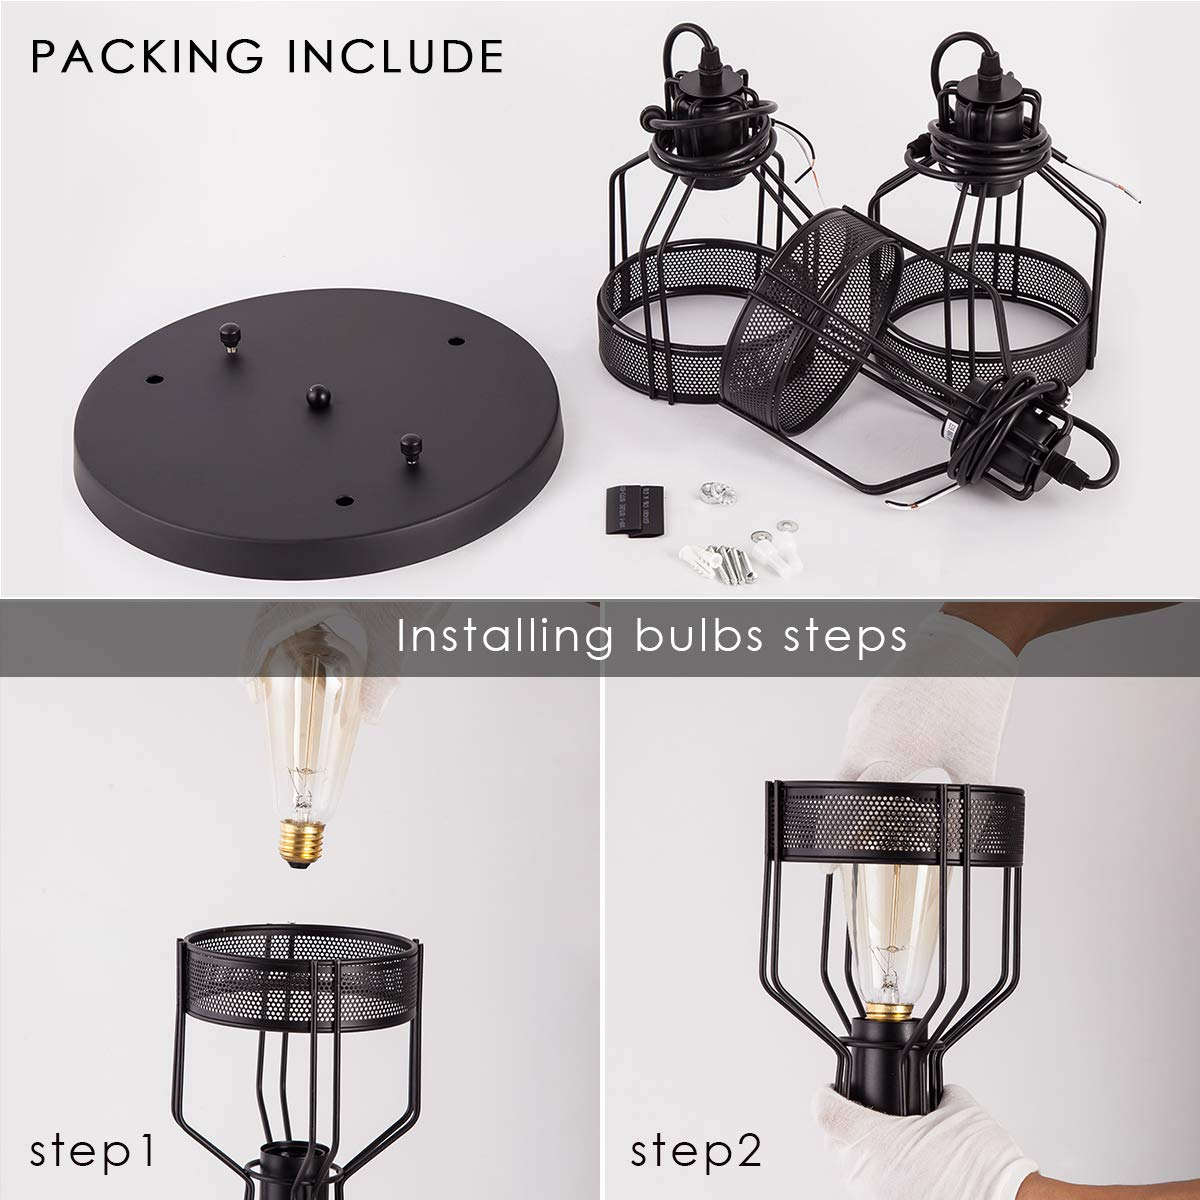 Pendant Light with Rustic Black Metal Cage Shade, Industrial Retro Matte Black Adjustable 3-Lights Hanging Lighting, Pendant lamp Fixtures for Home, Kitchen Island, Barn, Dining Room, Cafe, Farmhouse by ZYuan (Image #7)